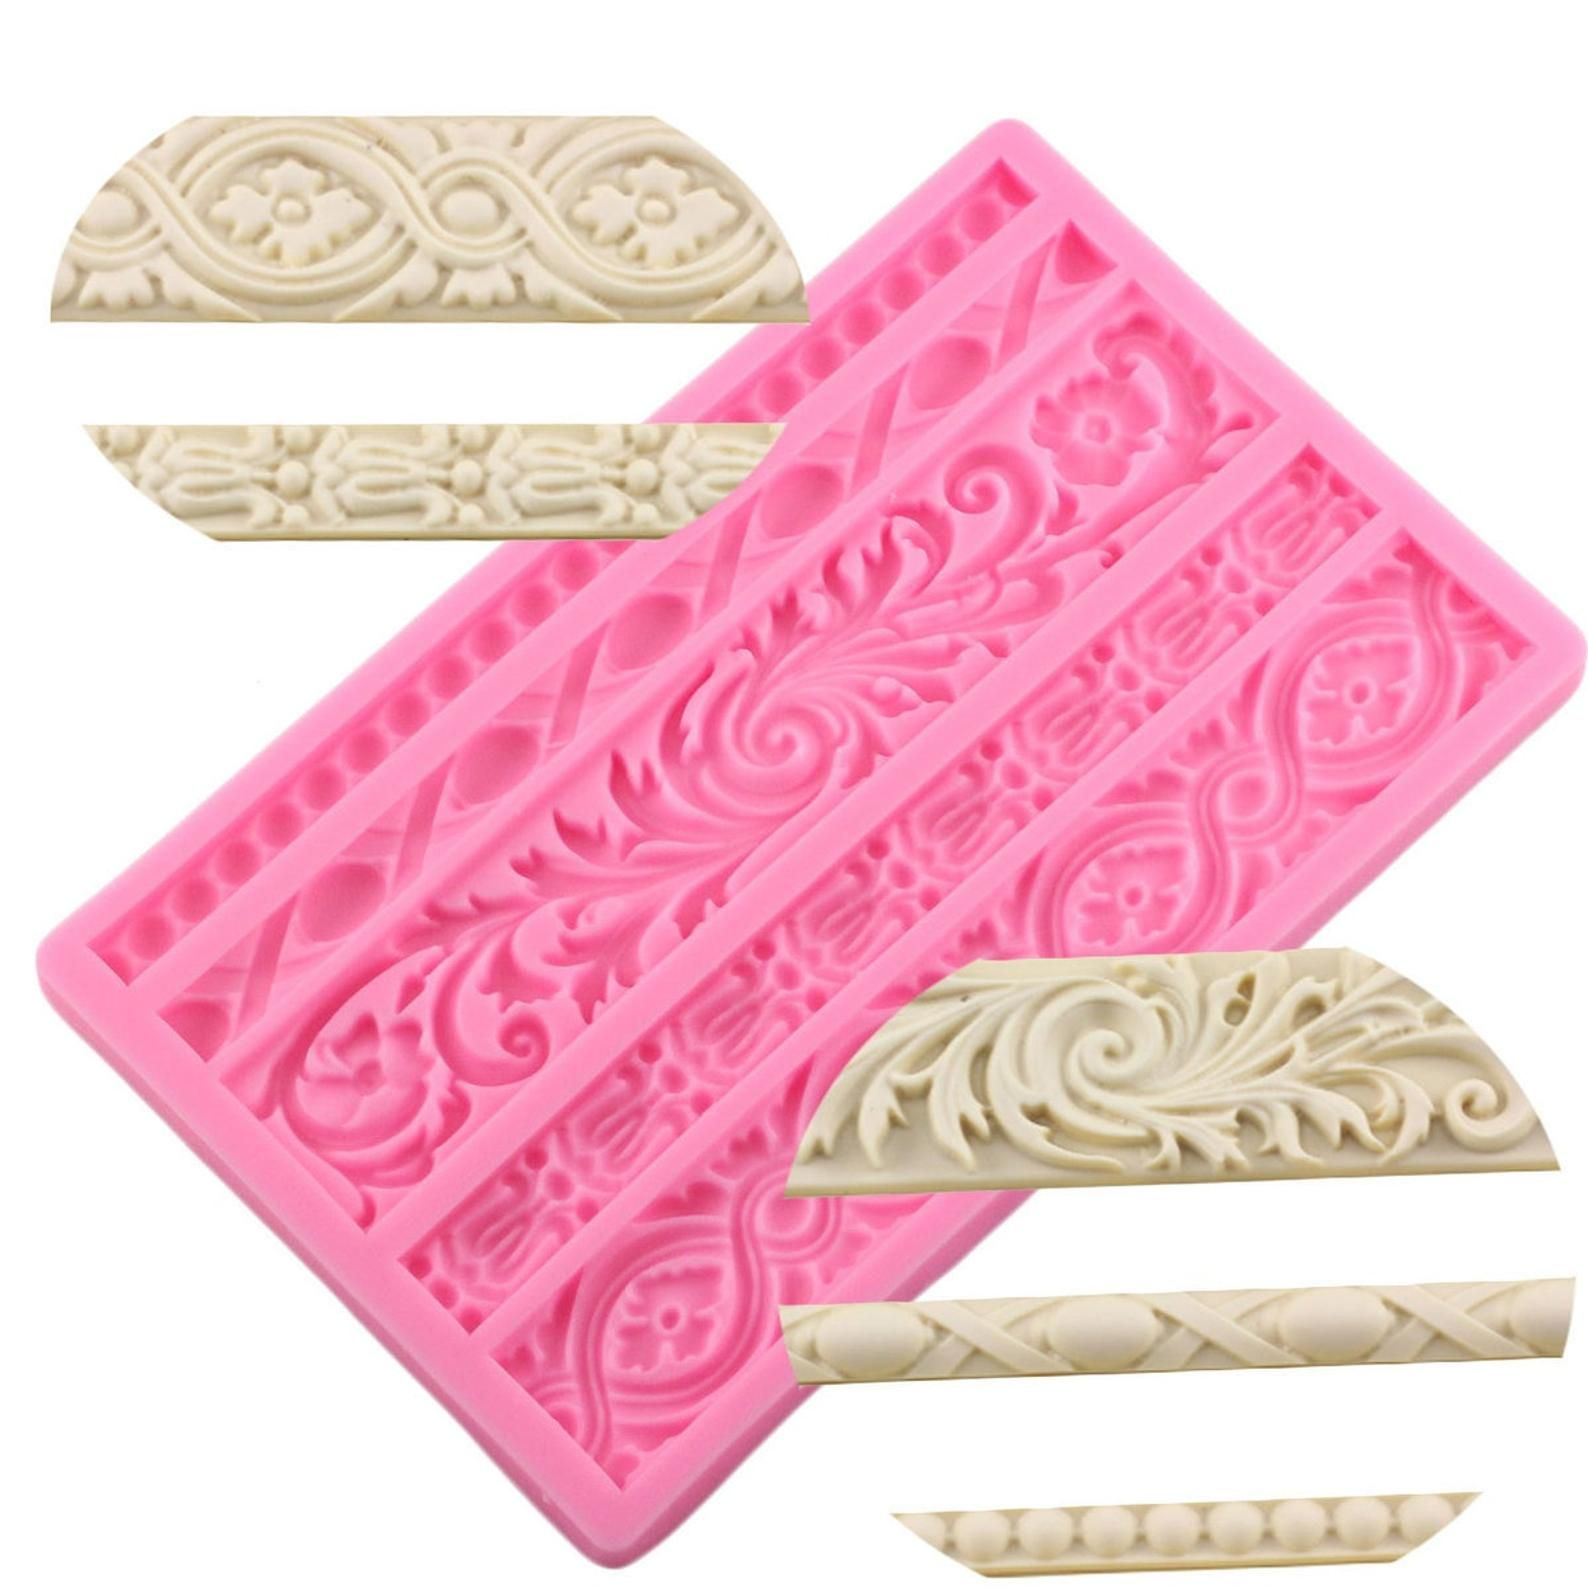 DIY 3D Feather Silicone Mold Cake Baking Chocolate Mold Fondant Mould Decoration